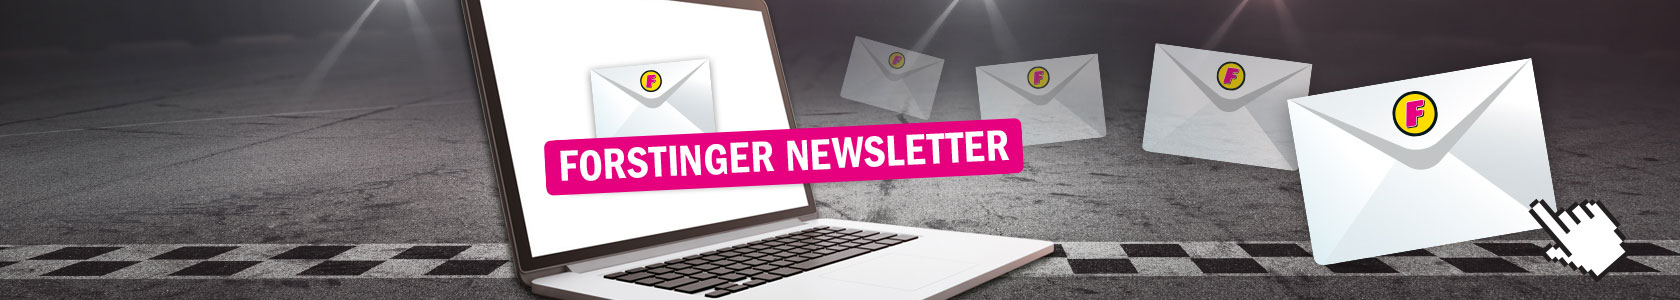 Forstinger Newsletter